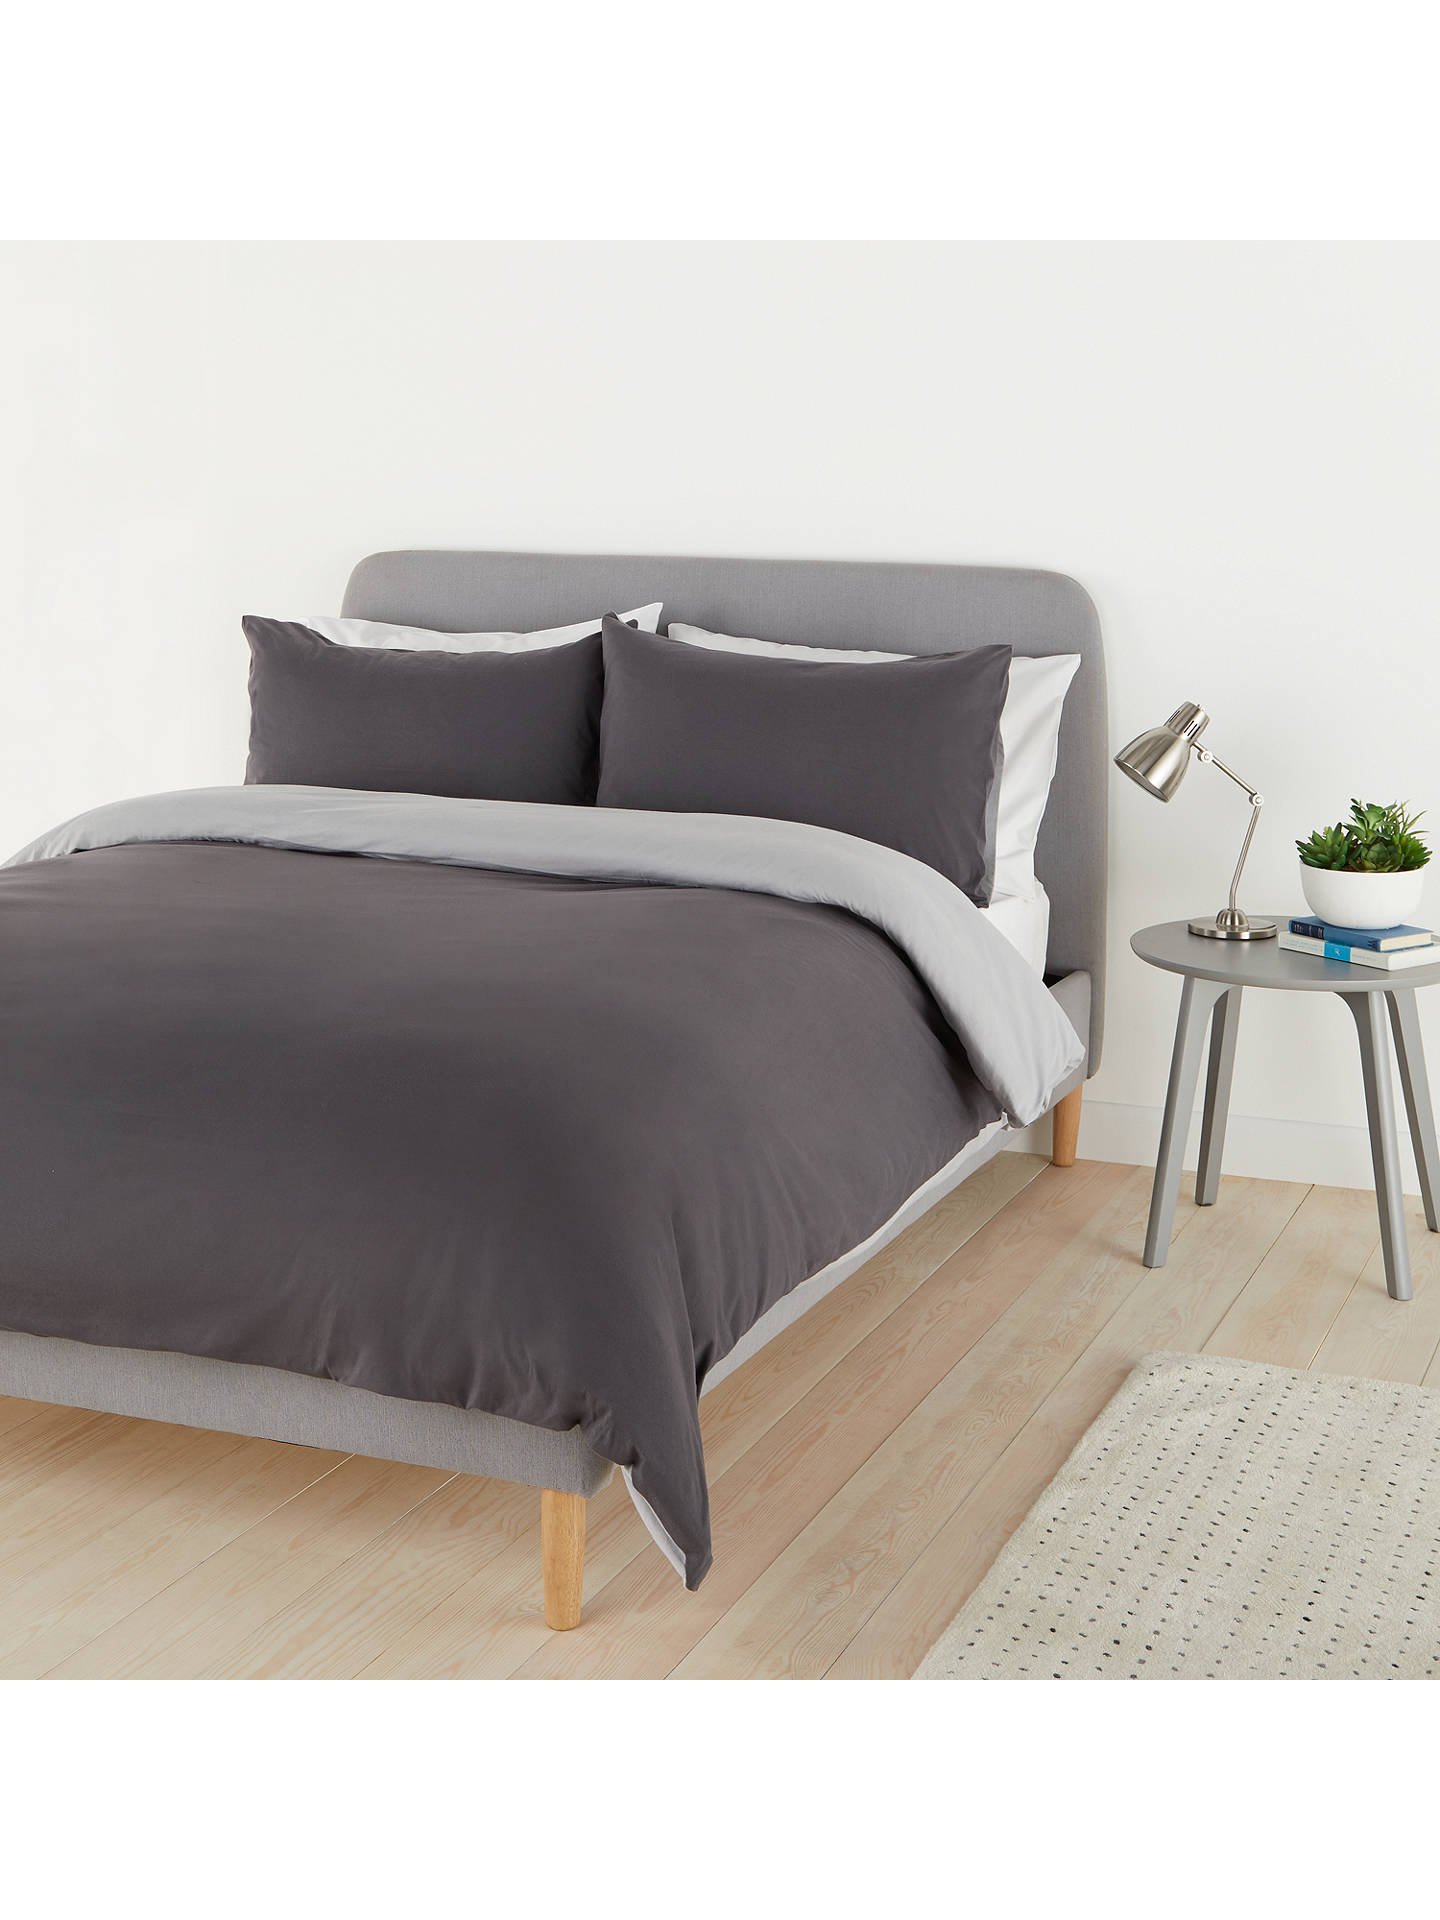 Jersey Cotton Bed Sheets Justicearea Com